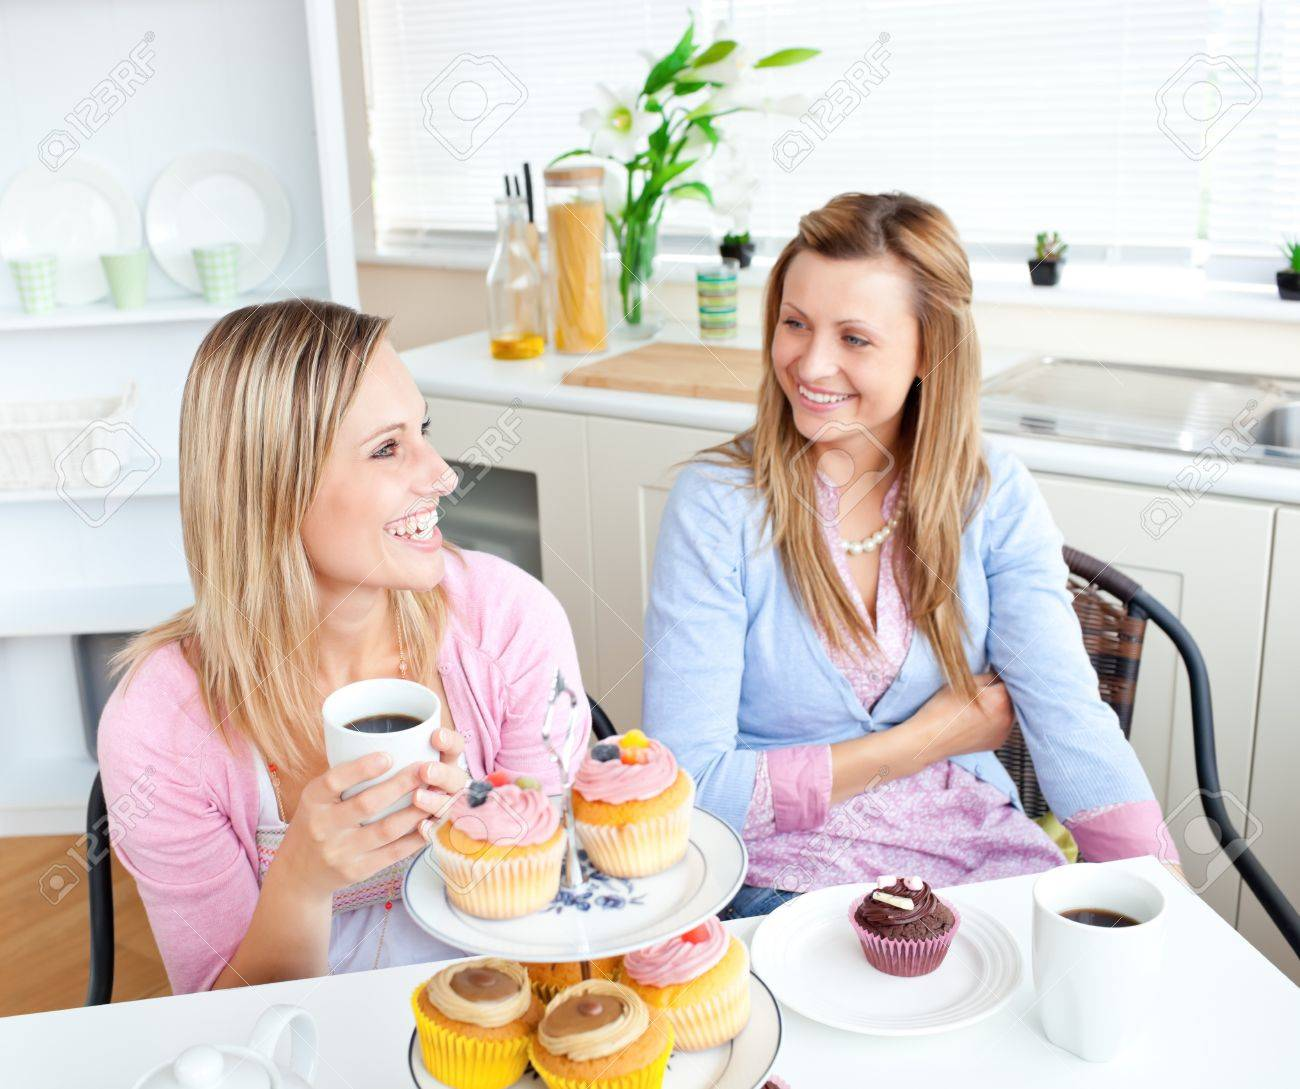 Female friends with cakes and coffee speaking together in the kitchen Stock Photo - 10245038